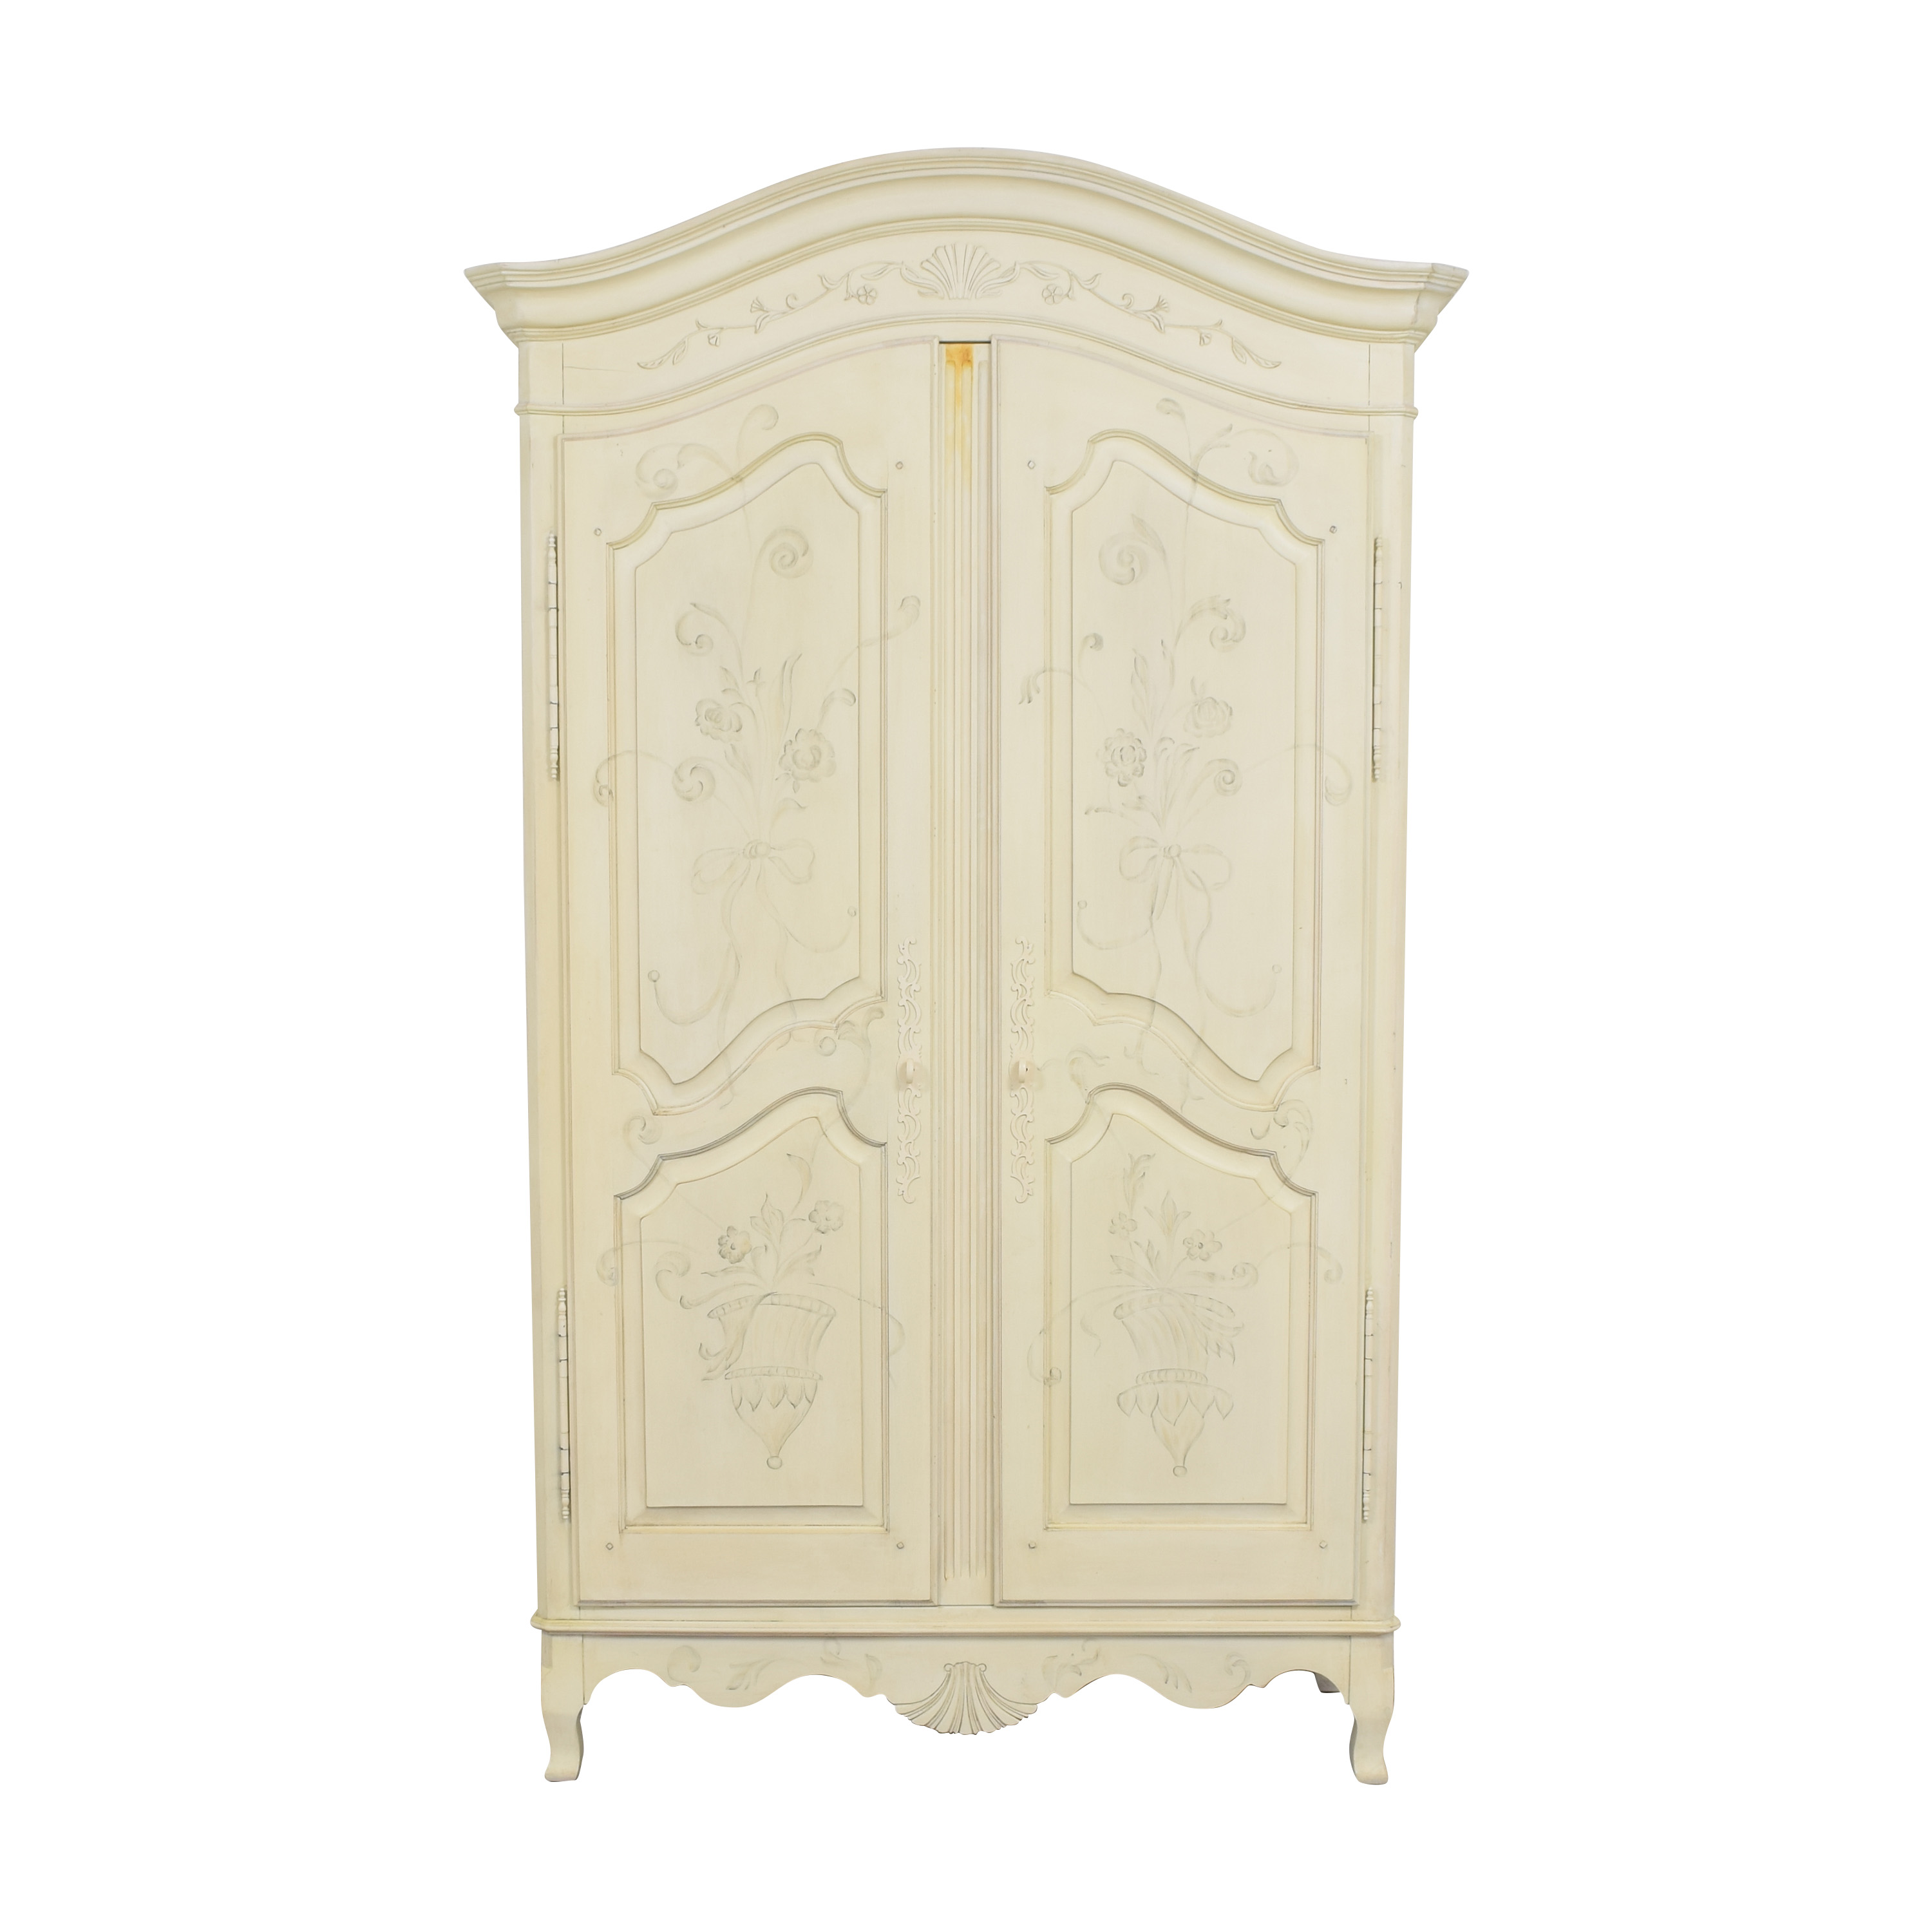 Ethan Allen Ethan Allen Decorated Country French Armoire nj